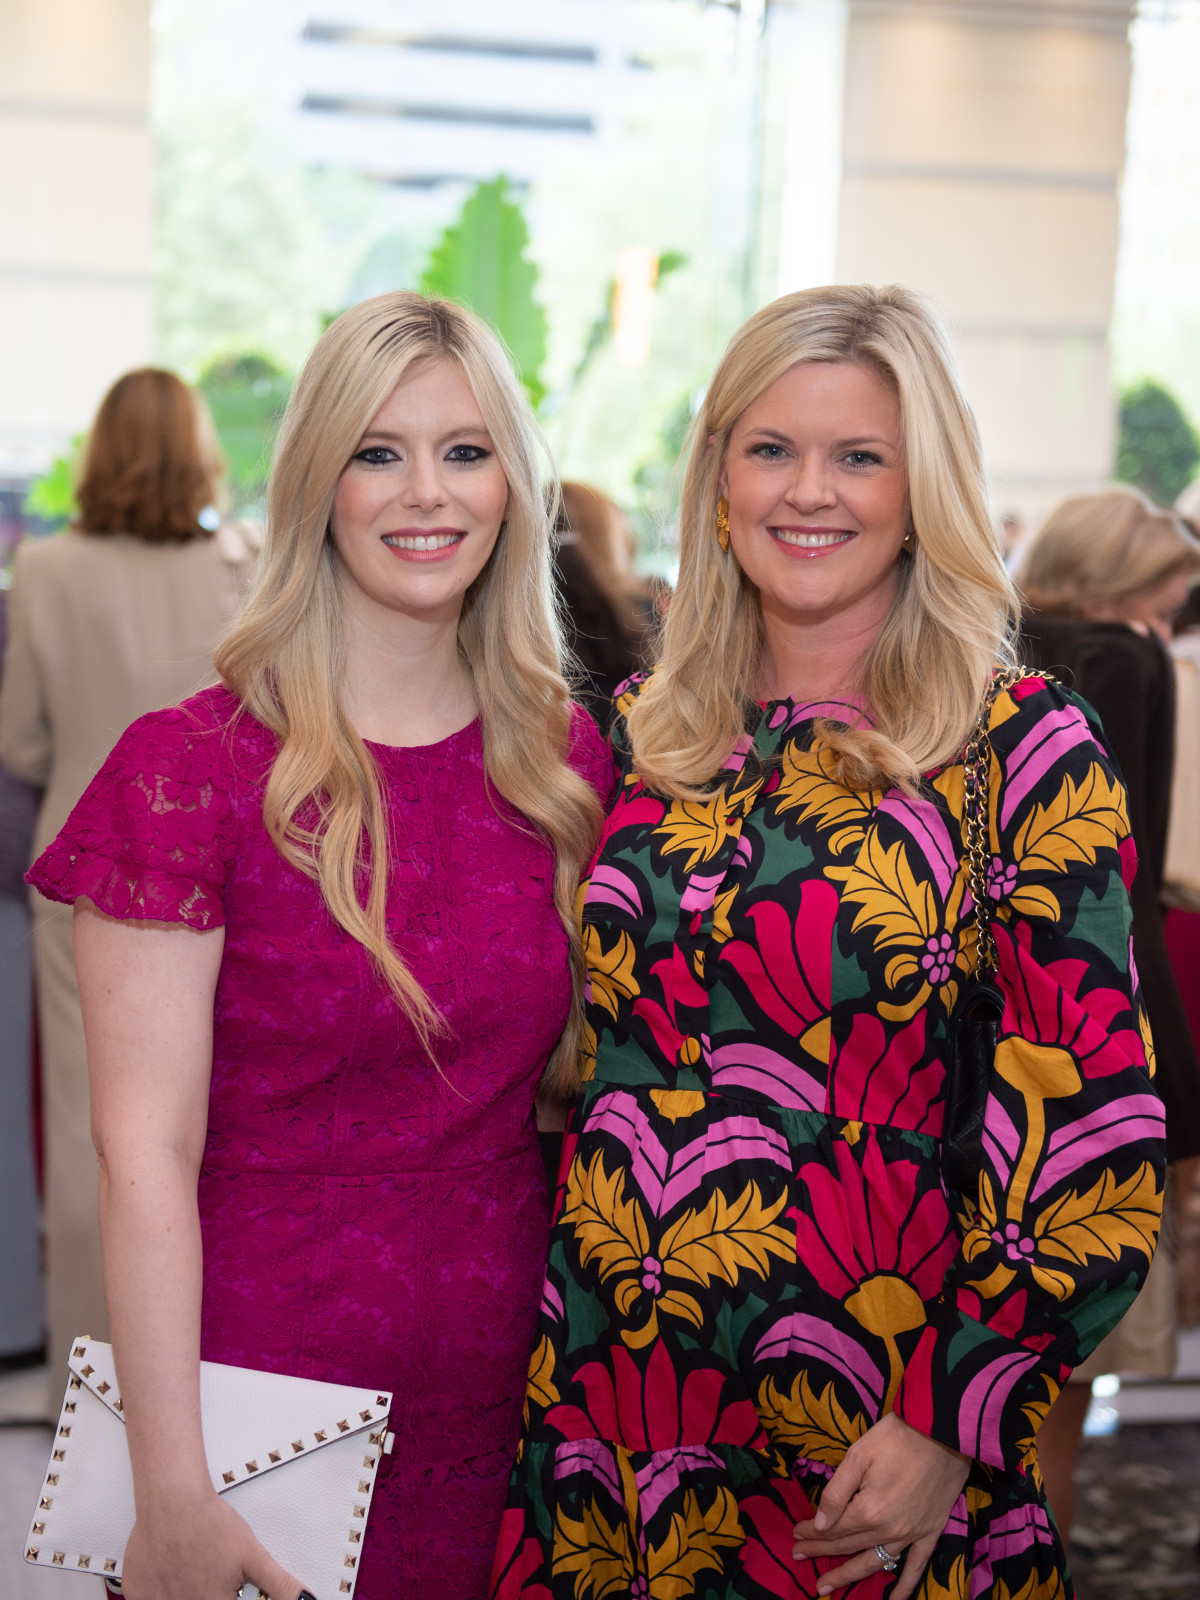 Razzle Dazzle Luncheon 2019 Kimberly Scheele, Ashlee Love